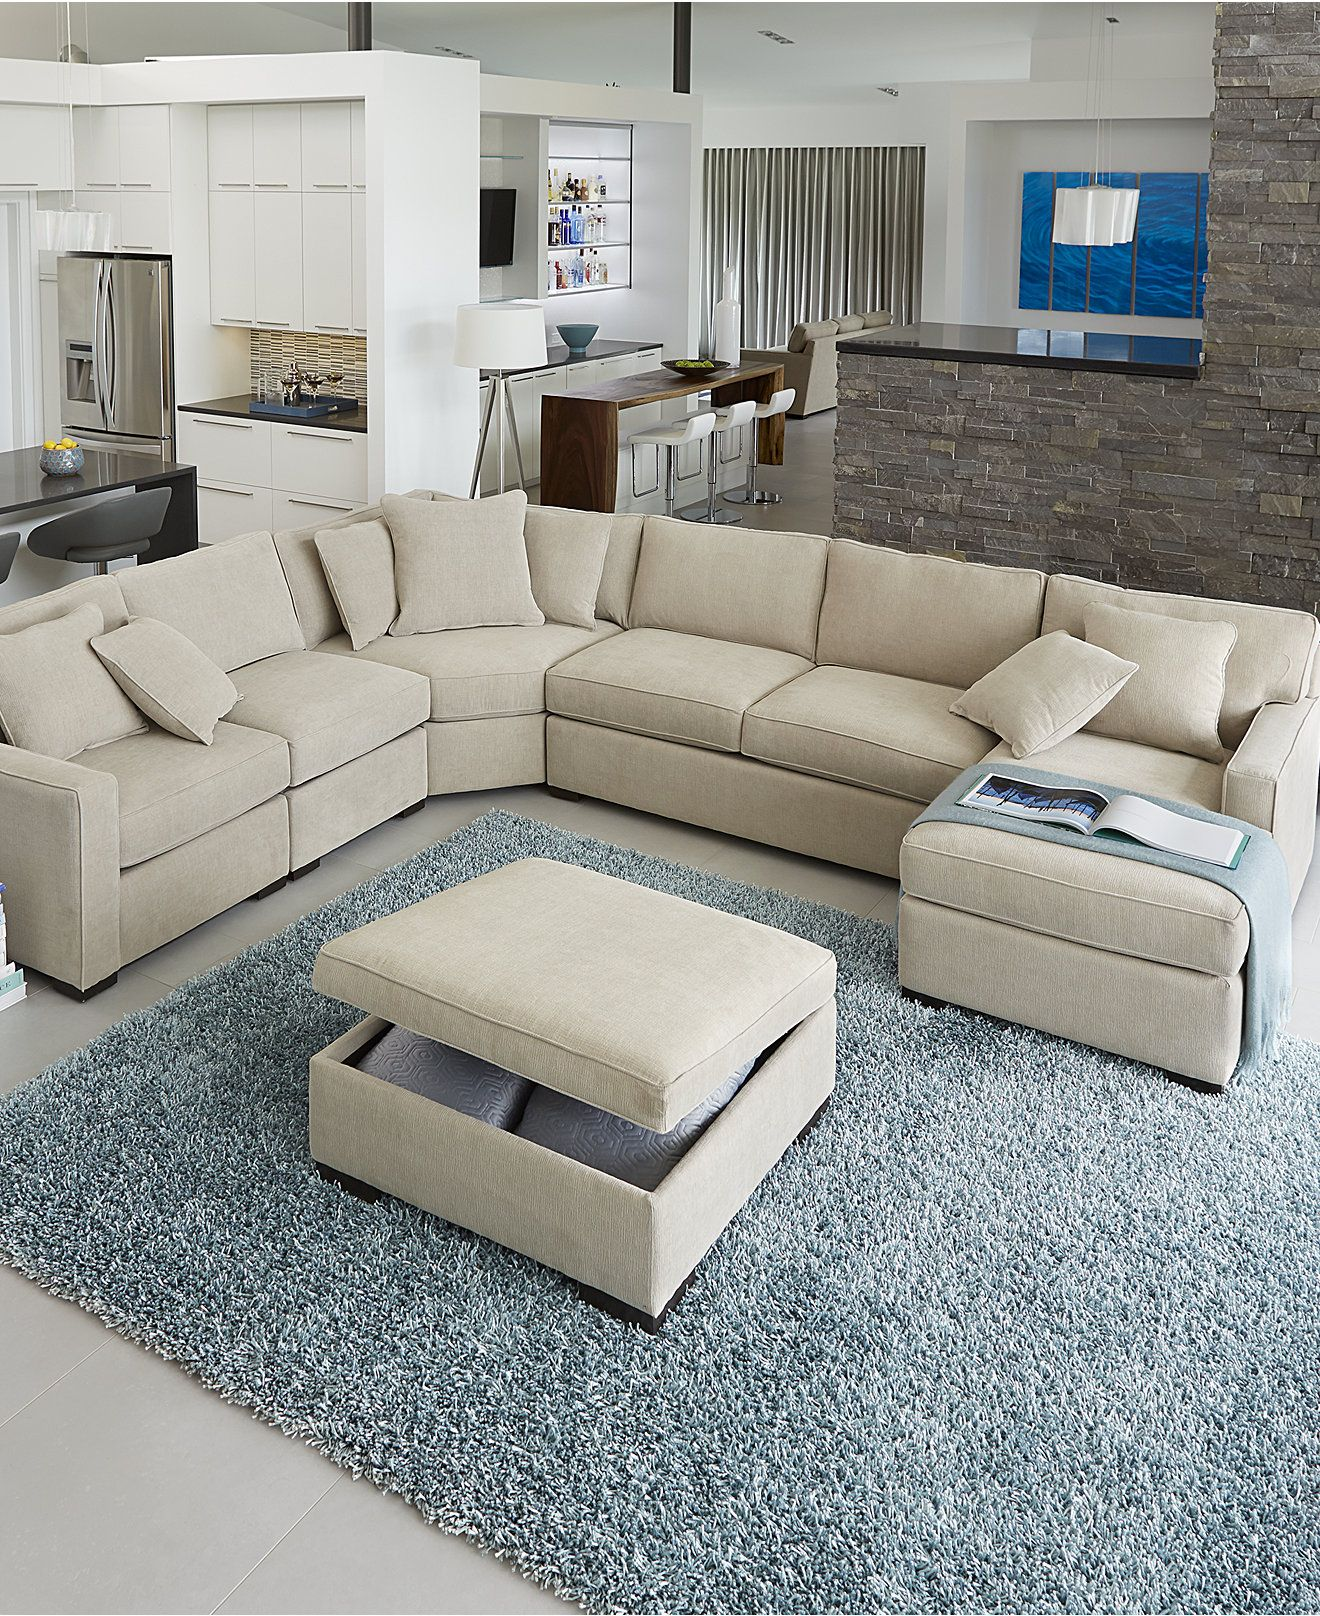 Furniture Living Room Seating Sectionals Beige